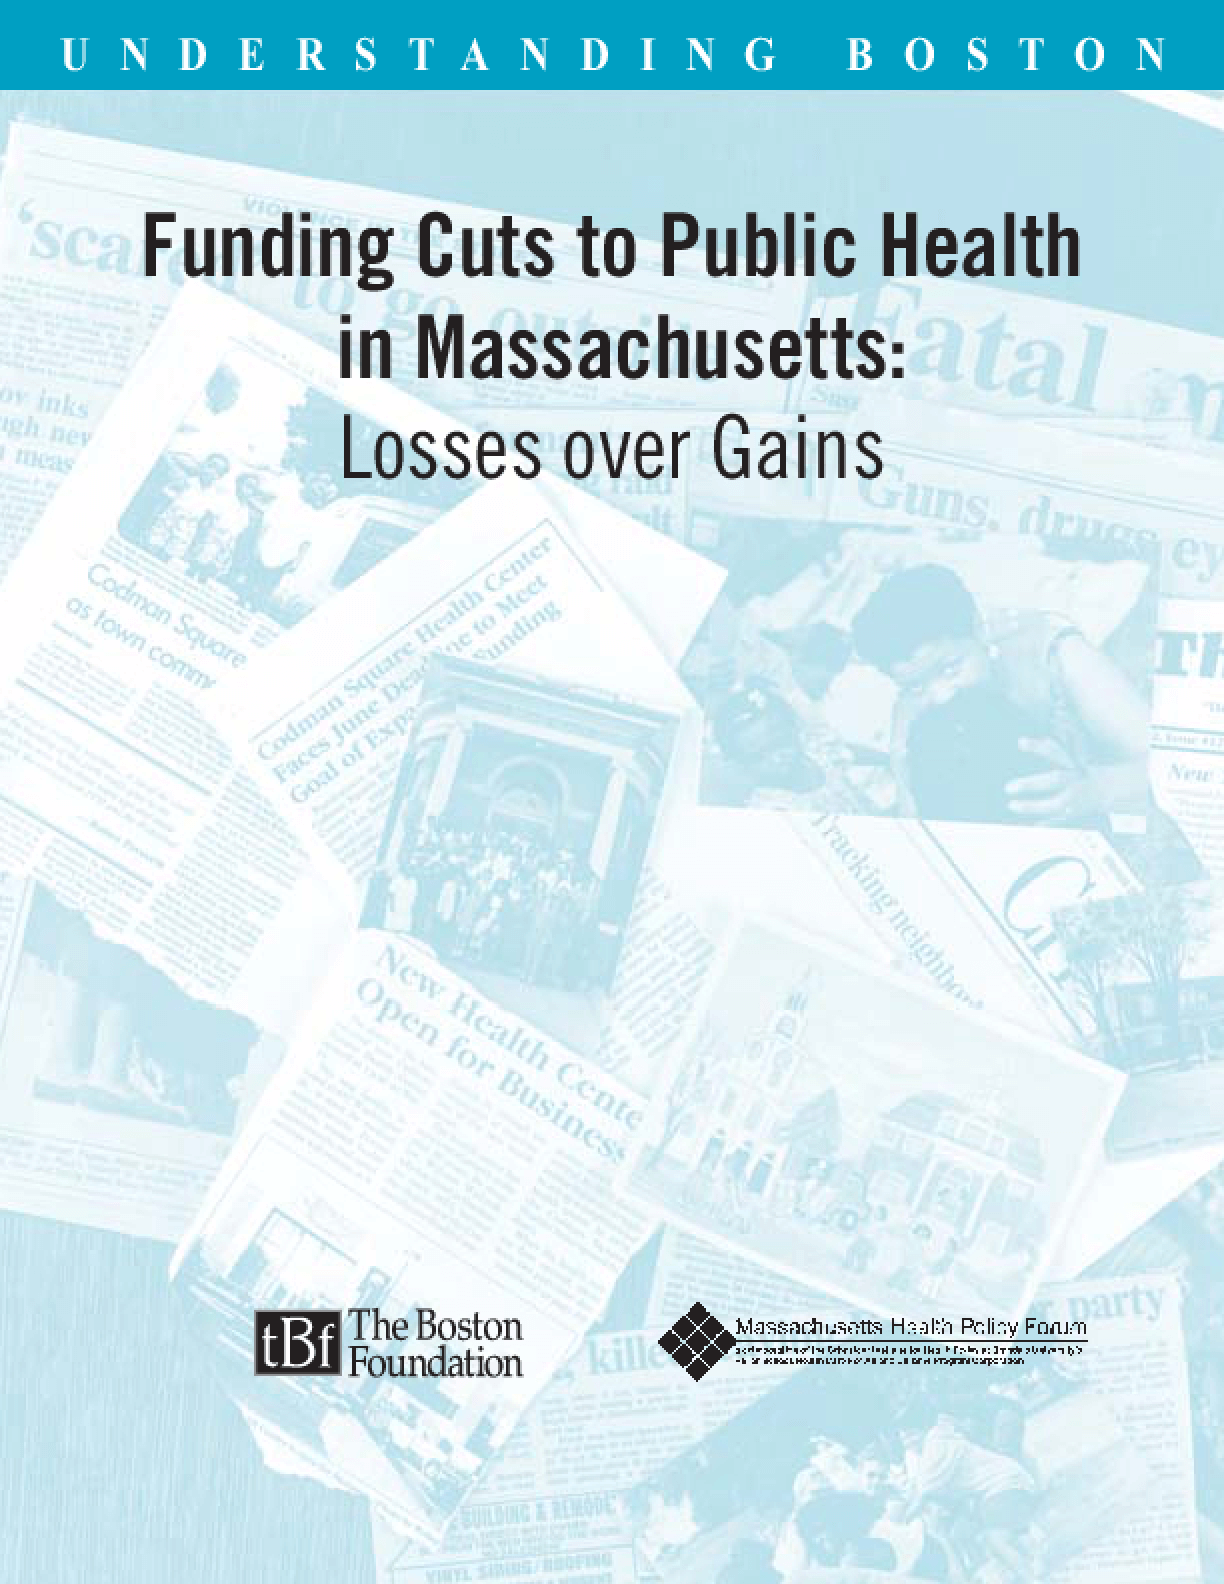 Funding Cuts to Public Health in Massachusetts: Losses Over Gains